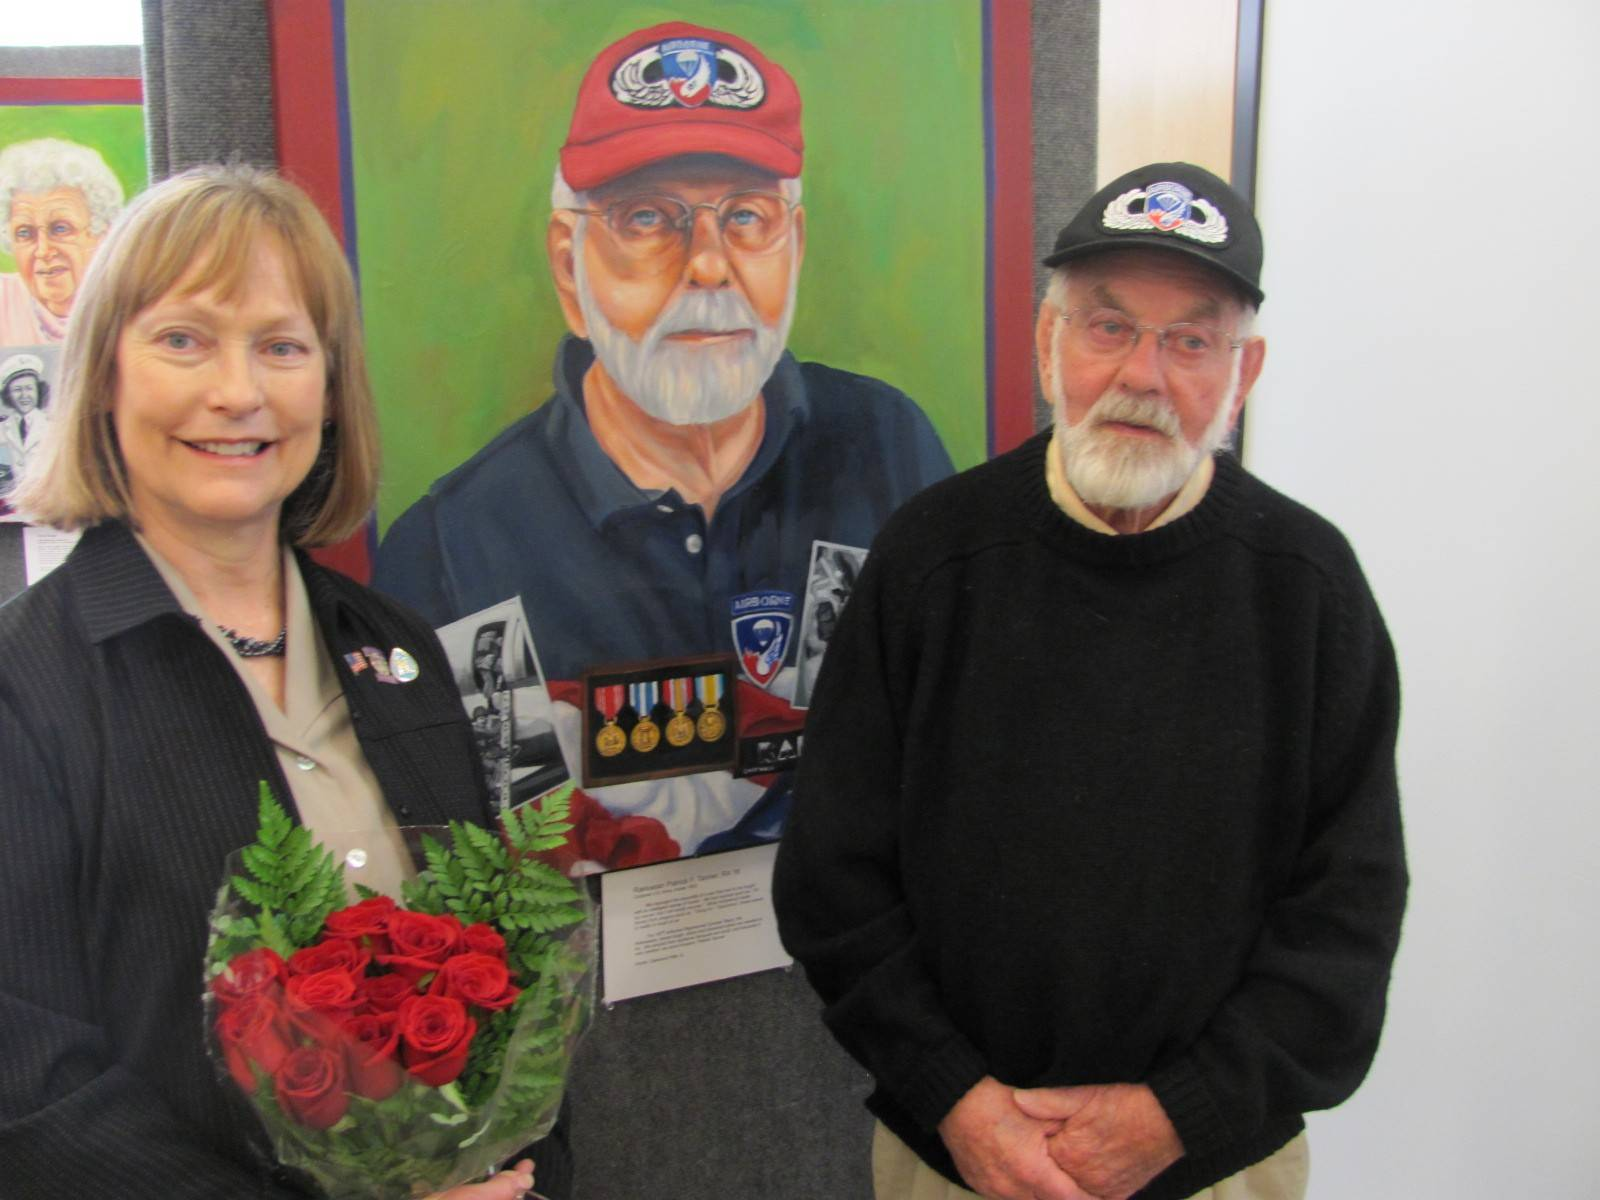 Algonquin artist Jeanine Hill-Soldner with the subject of one of her portraits of area veterans, Cpl. Patrick Tanner, during a reception at the Addison Public Library.